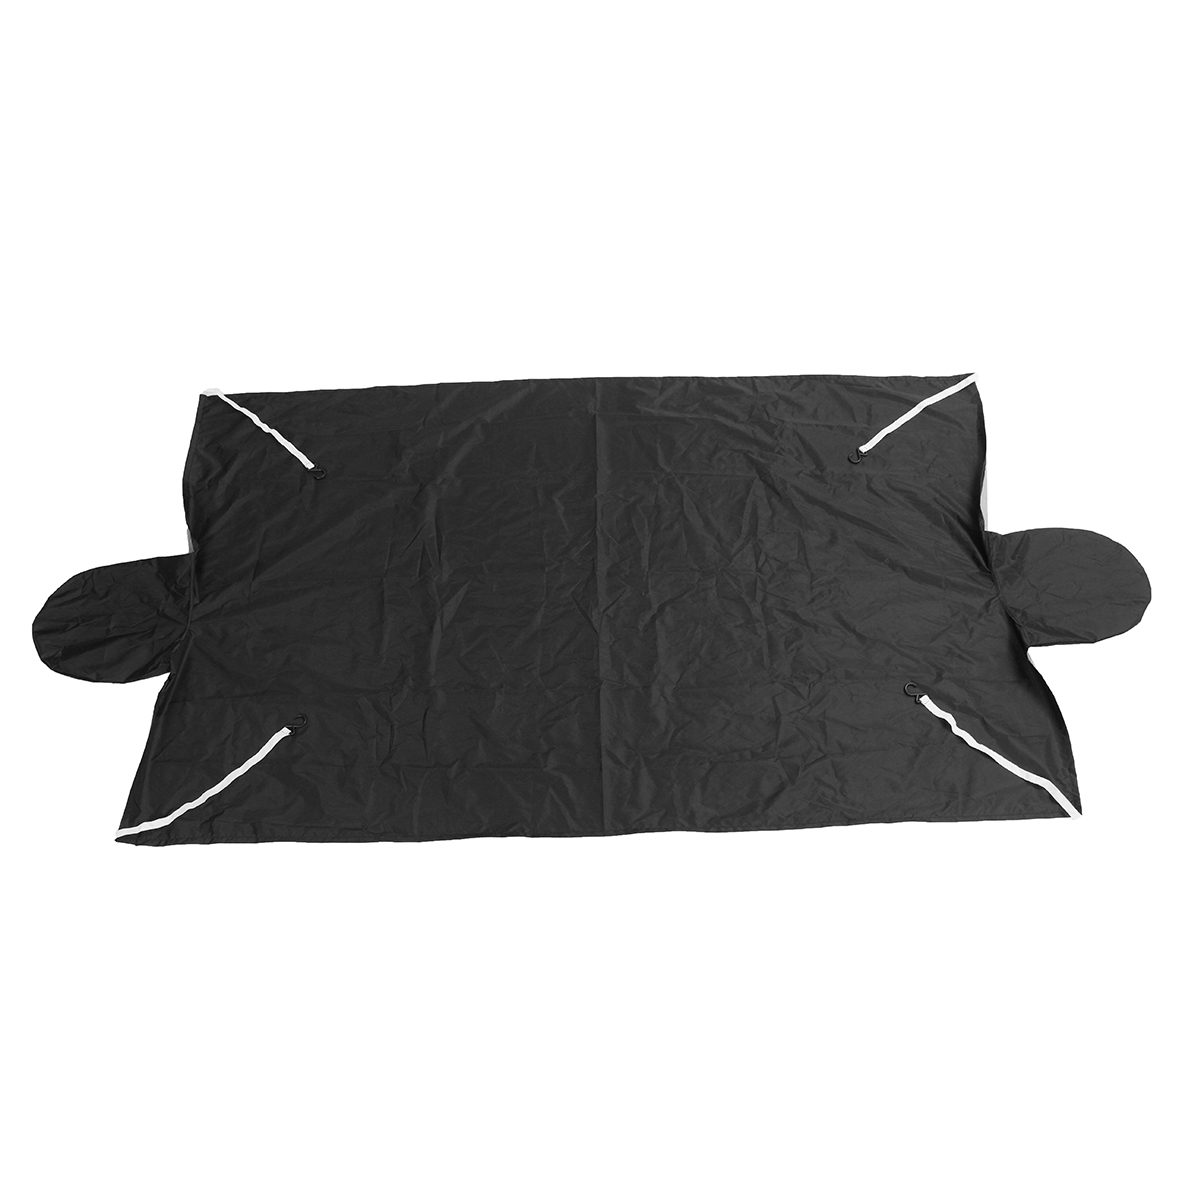 170x110cm Car Windshield Sunshade Windscreen Cover Snow Ice Mirror Cover Sun Visor Waterproof Protector with Hook Winter Use|Car Covers| |  - title=